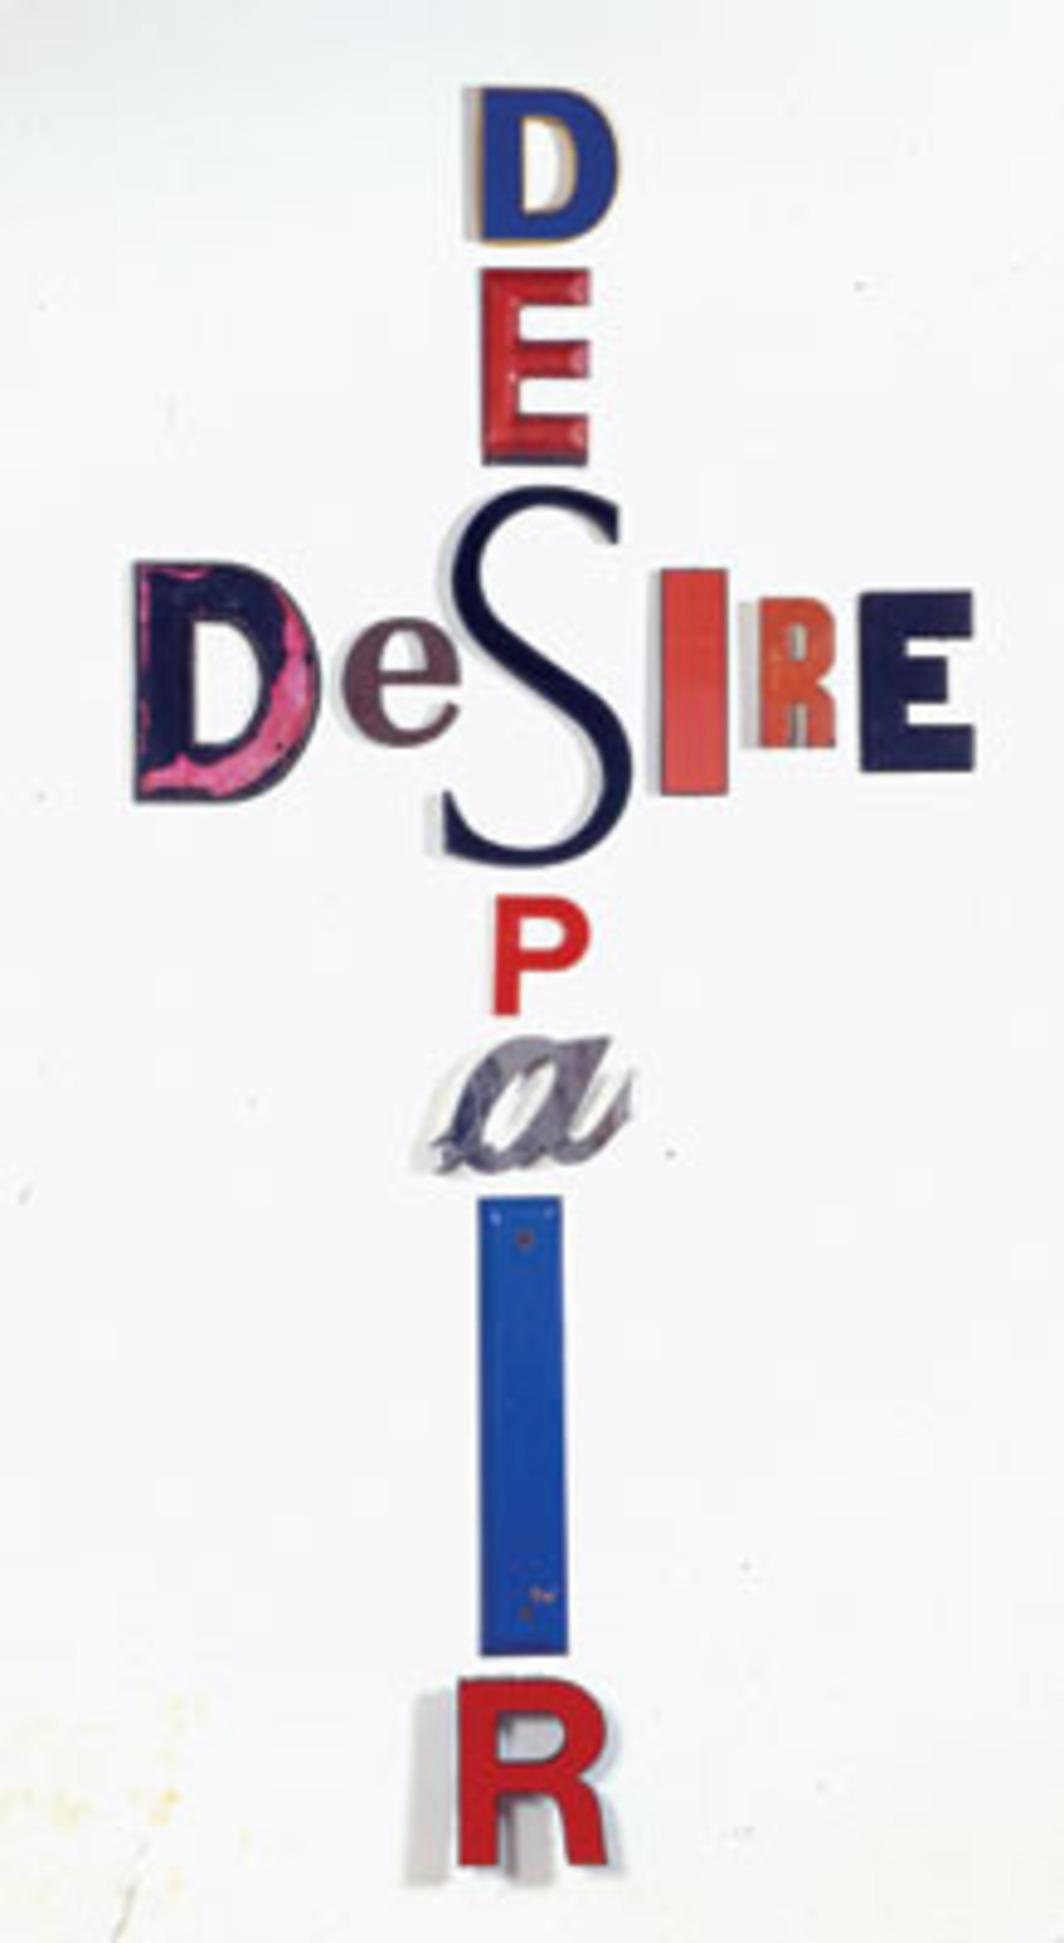 "Jack Pierson, Desire Despair, 1996, metal, plastic, Plexiglas, and wood. 116 5/16 x 56 1/4""."